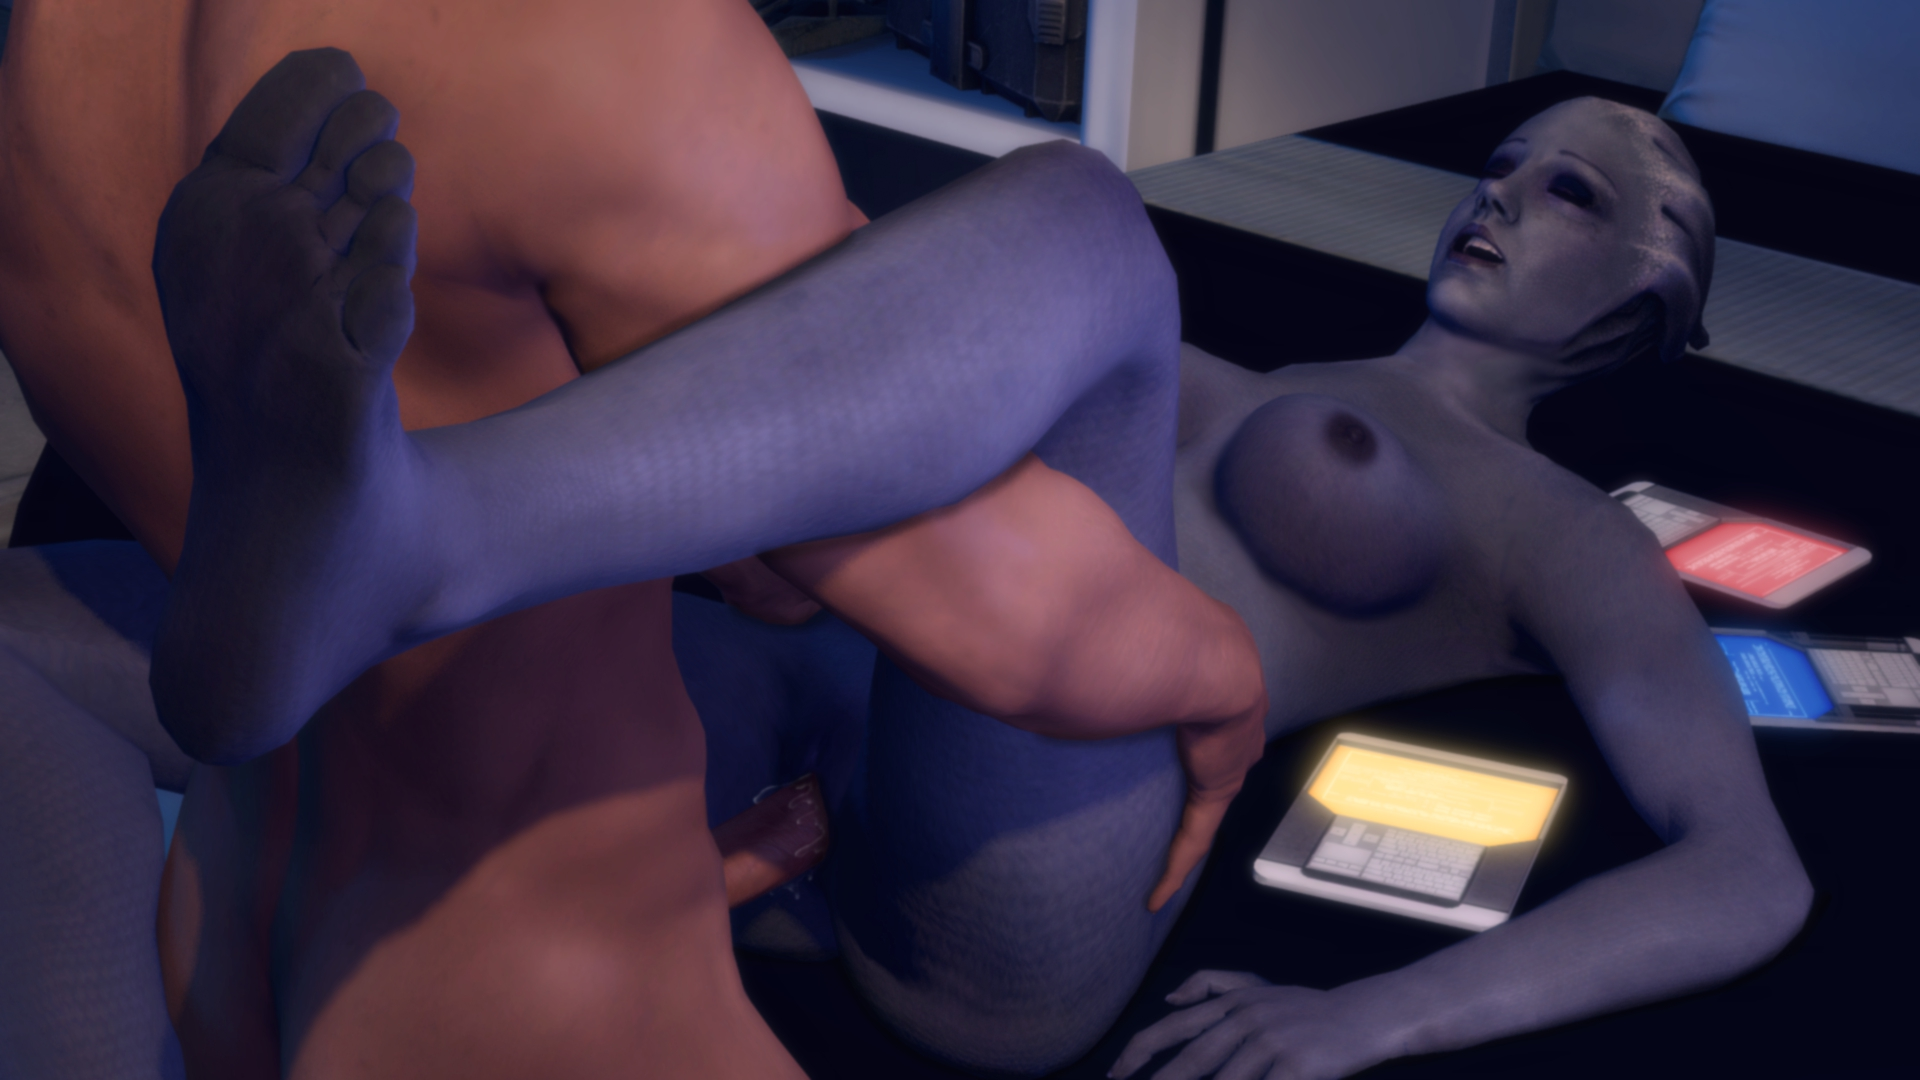 Mass effect porno sex xxx image